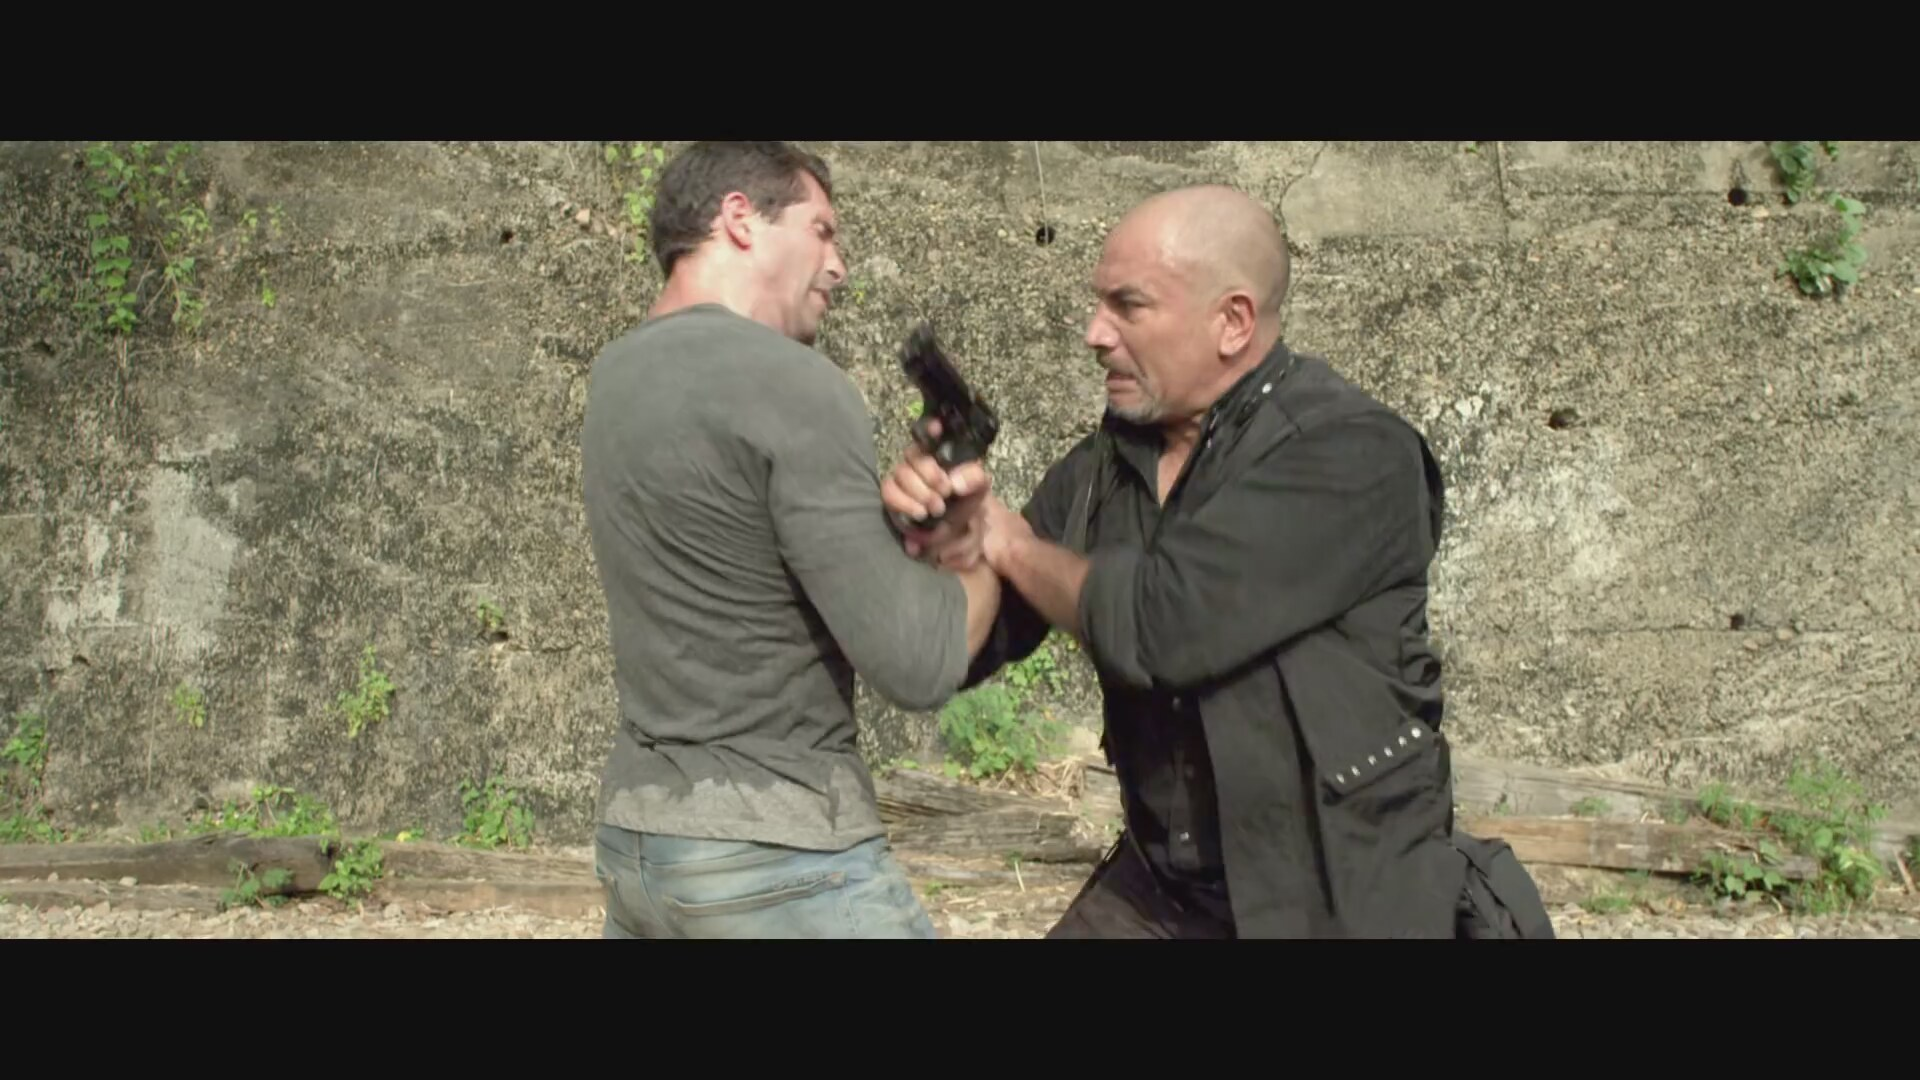 Hard Target 2 - Trailer - Own it 9 6